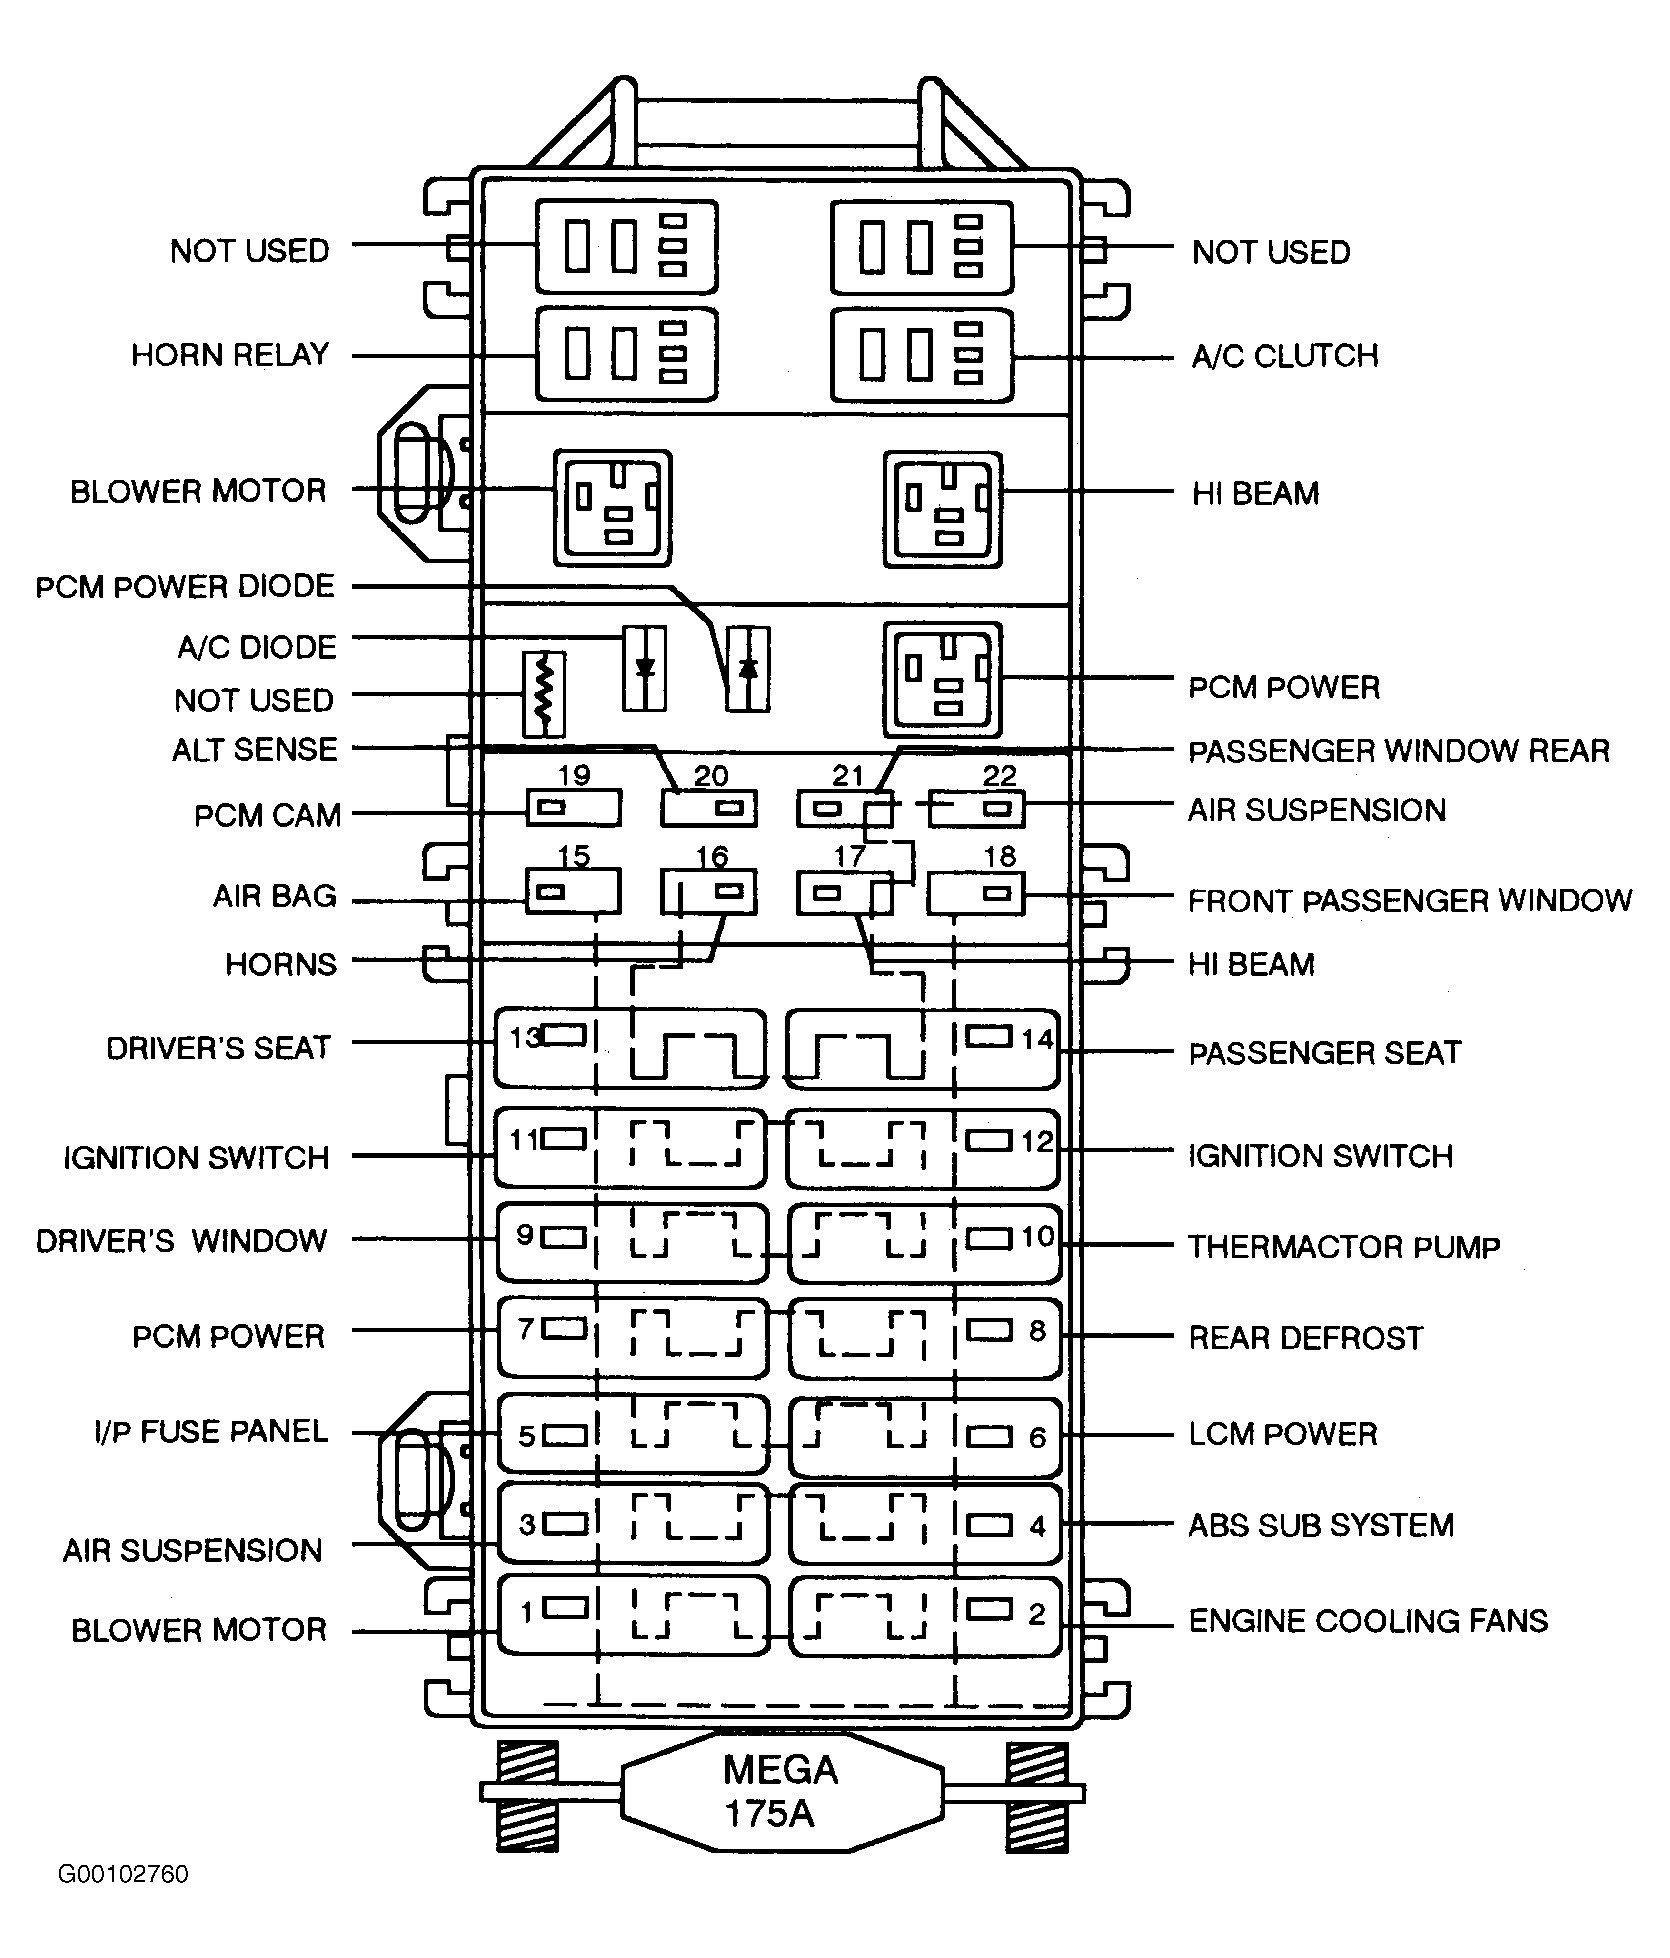 Ford F650 Fuse Box Diagram. Ford. Wiring Diagram Images